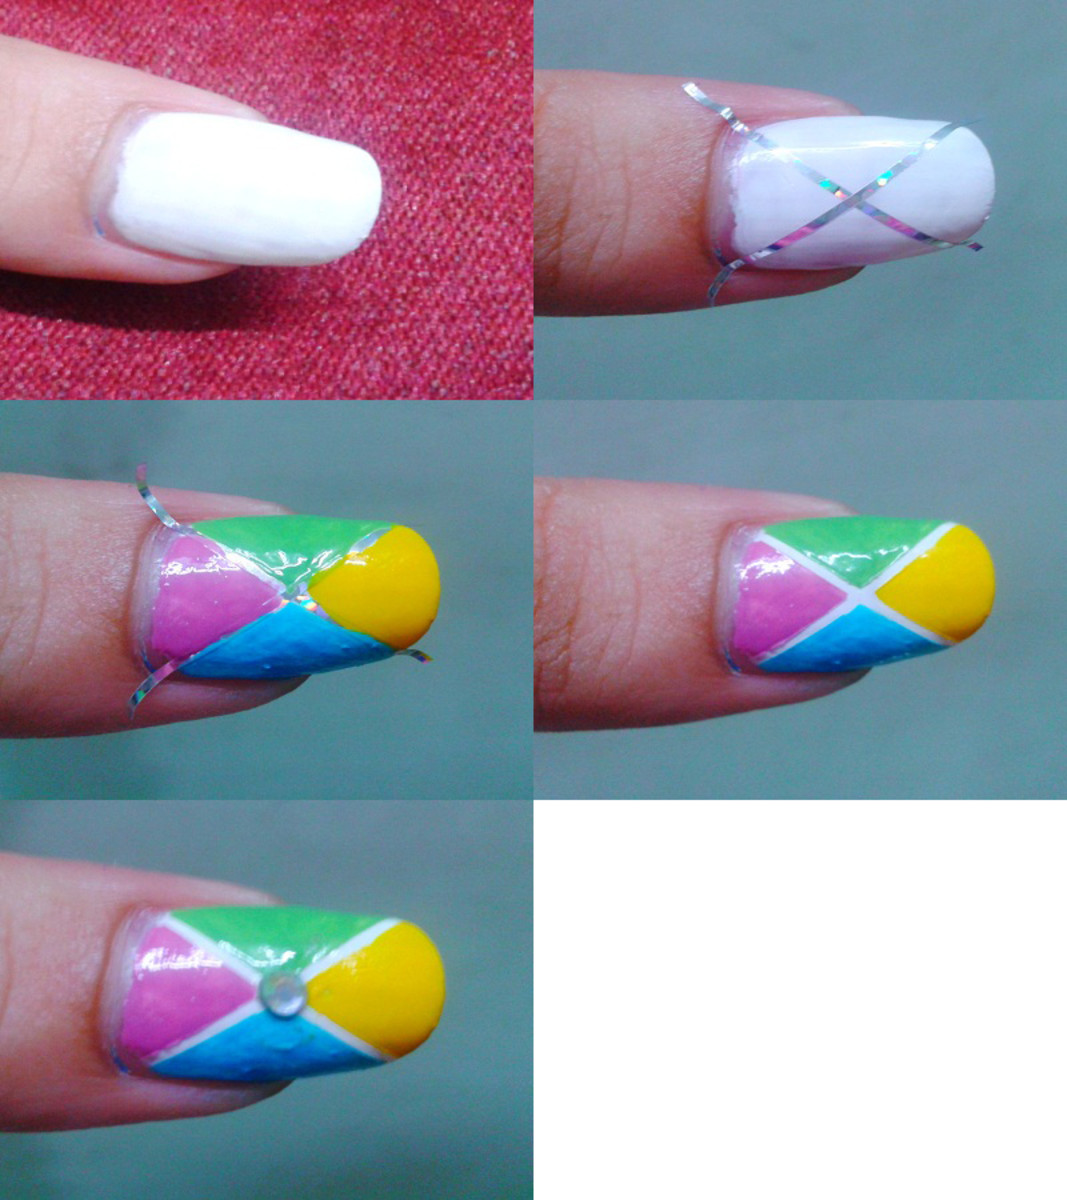 Striping Tape Nail Art Tutorial: Striping Tape Nail Art: Nail Art Trends For 2015